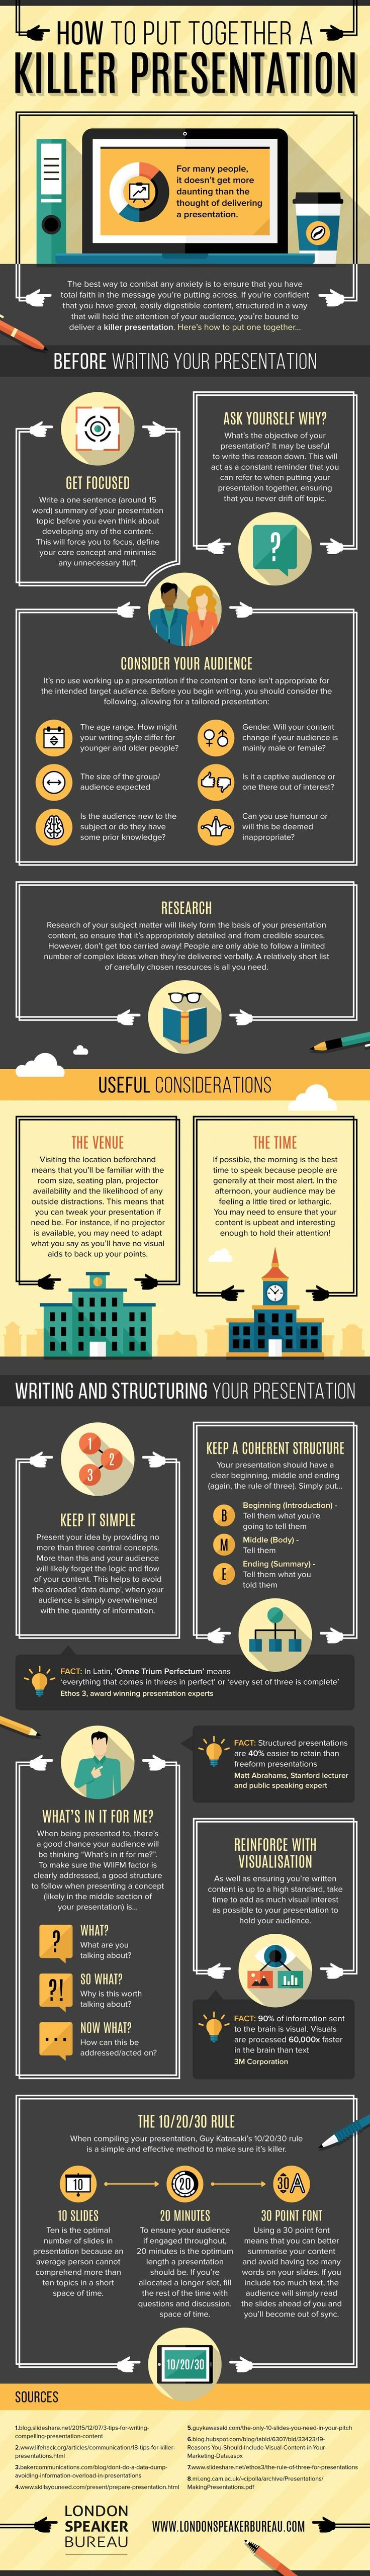 How To Put Together A Killer Presentation #Infographic #GraphicDesign #HowTo